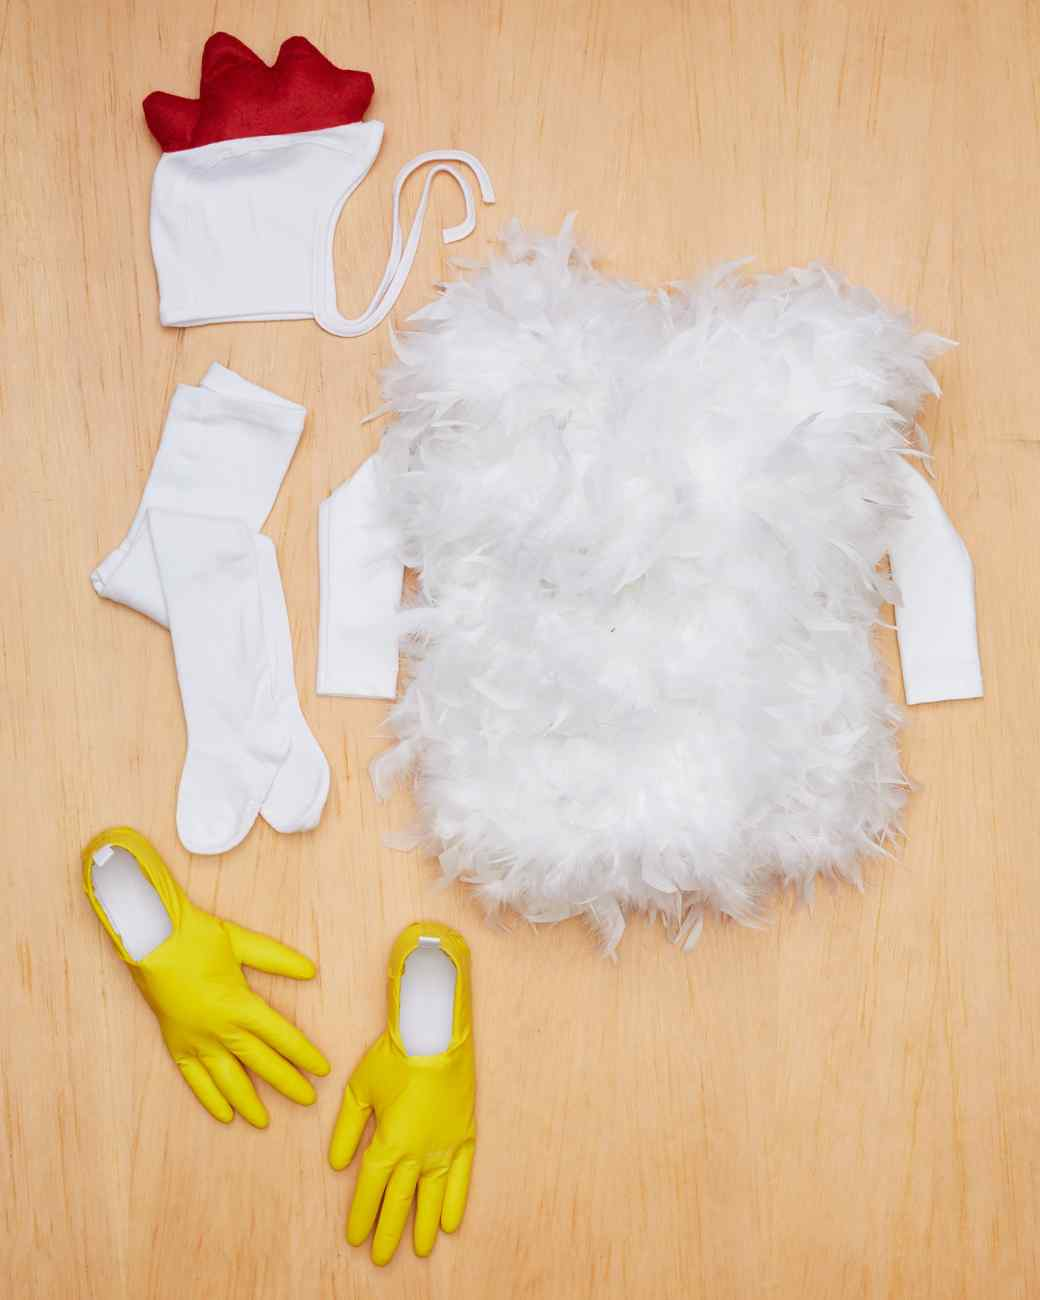 chicken costume materials